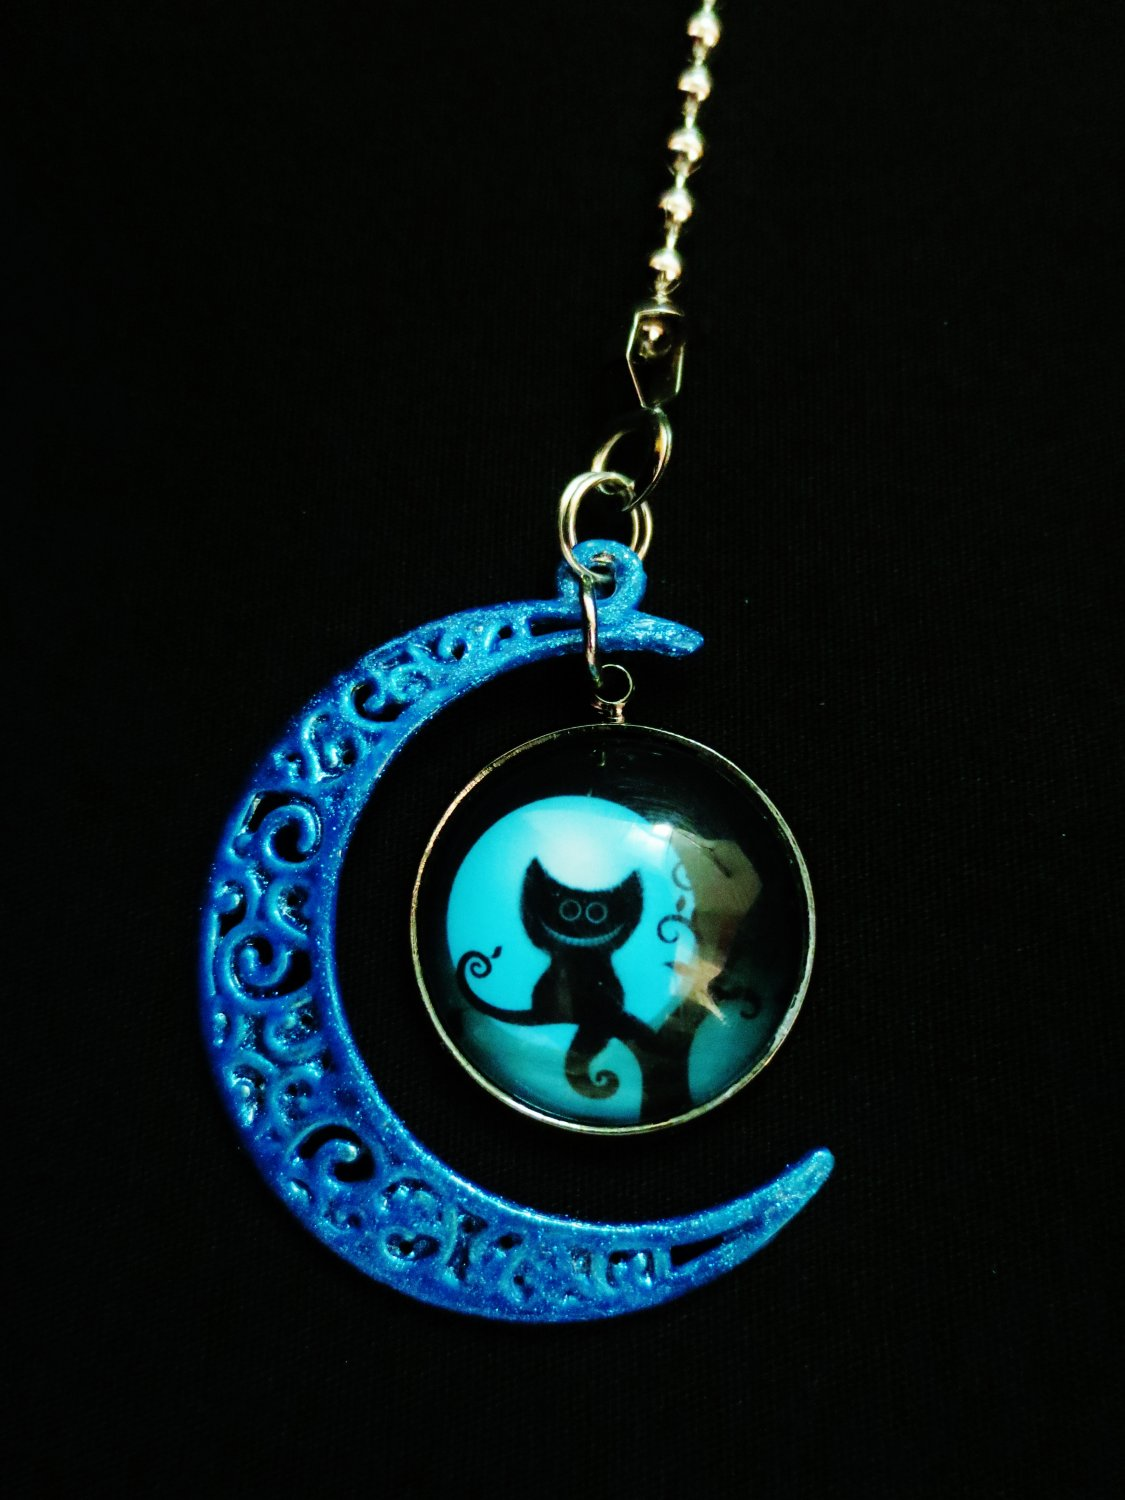 Colorful Moon Cheshire Cat Metal Ceiling Fan Light Pull Chain